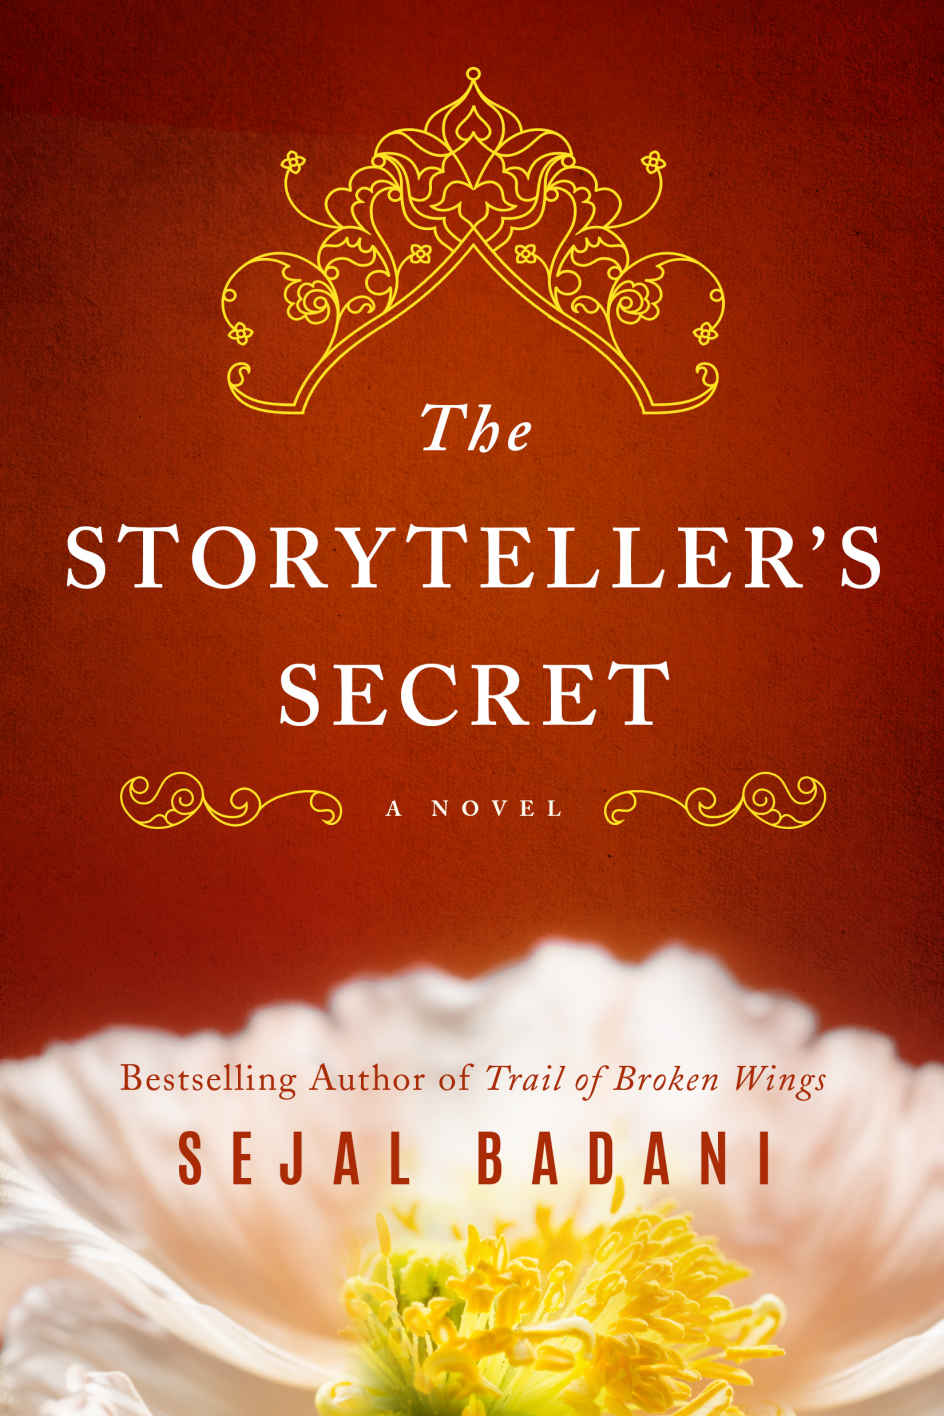 The Storyteller's Secret: A Novel - Sejal Badani [kindle] [mobi]